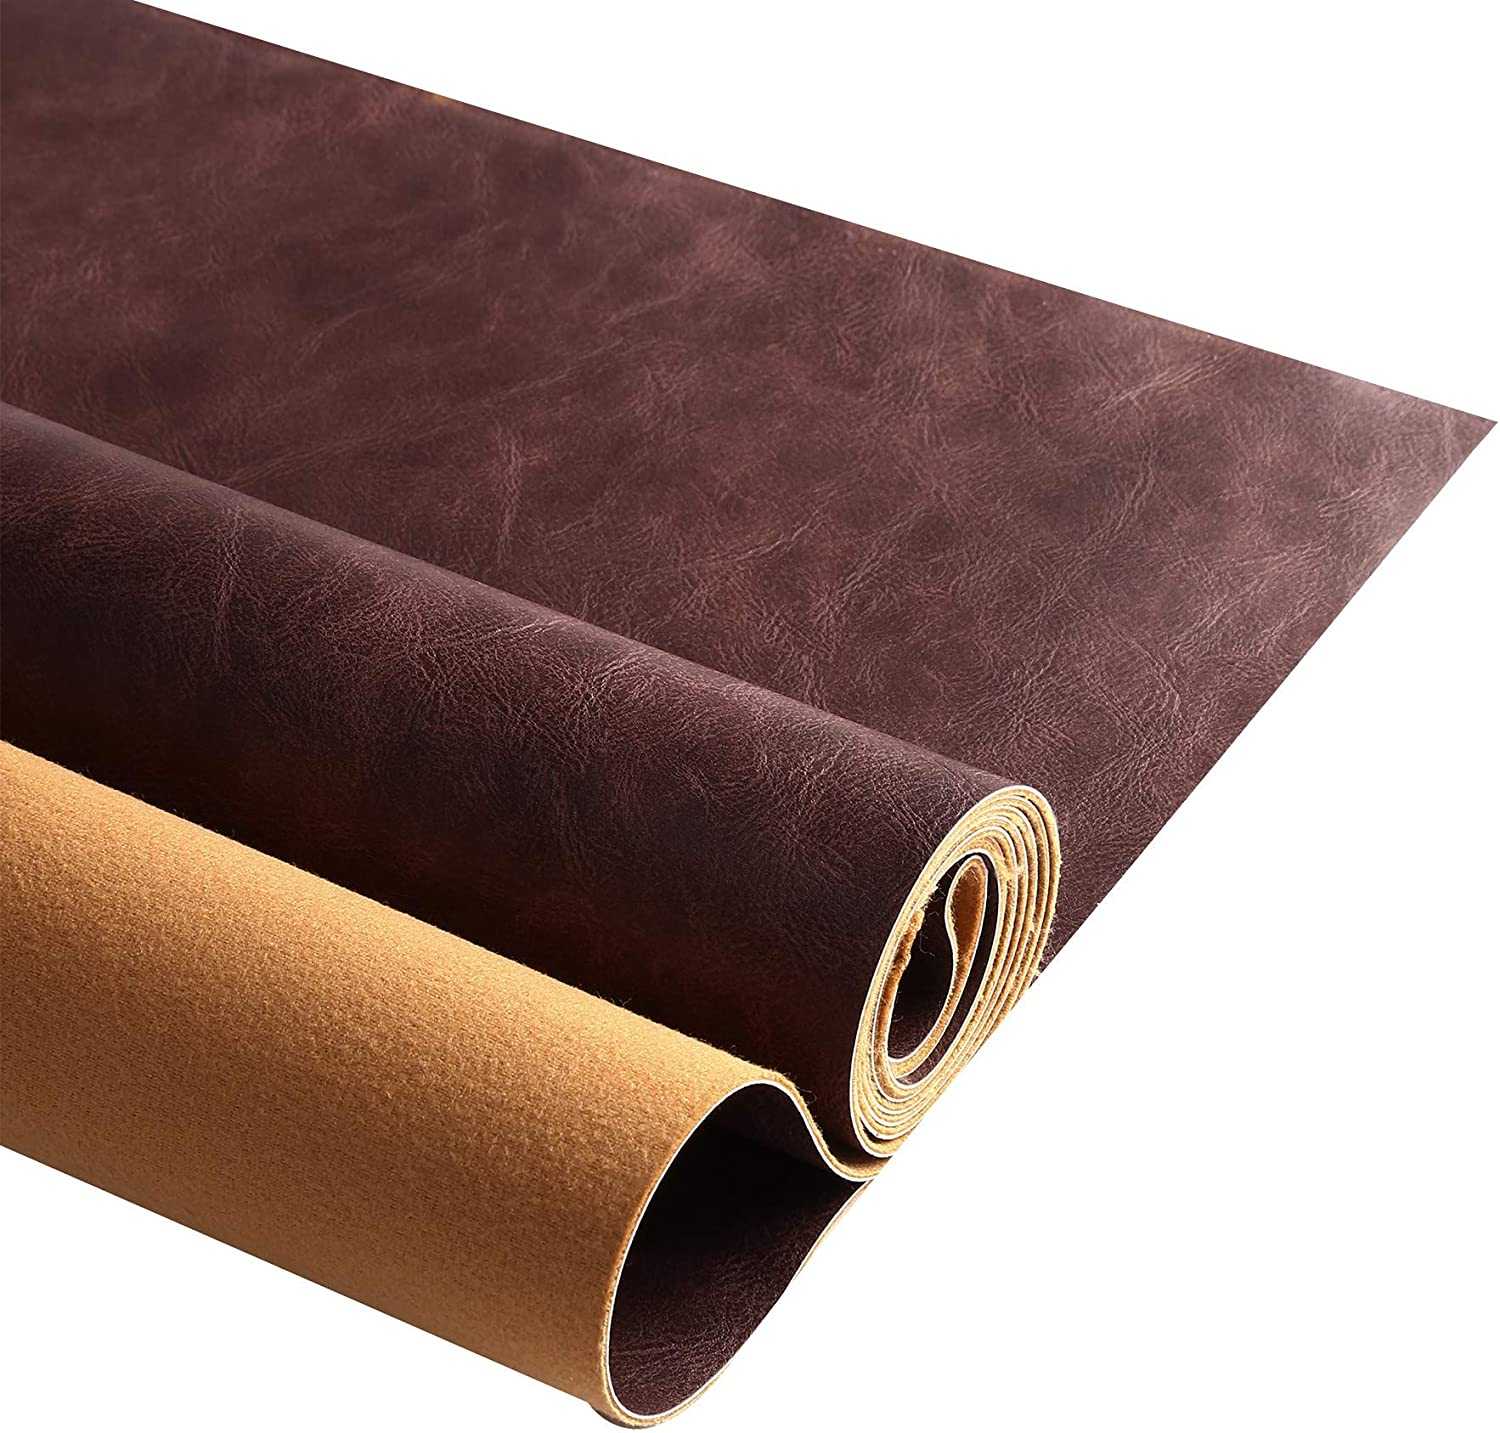 Soft PU Leather Upholstery Fabric 1.2mm Thick Upholstery Leather Distressed Bark Fabric(Dark Brown,36